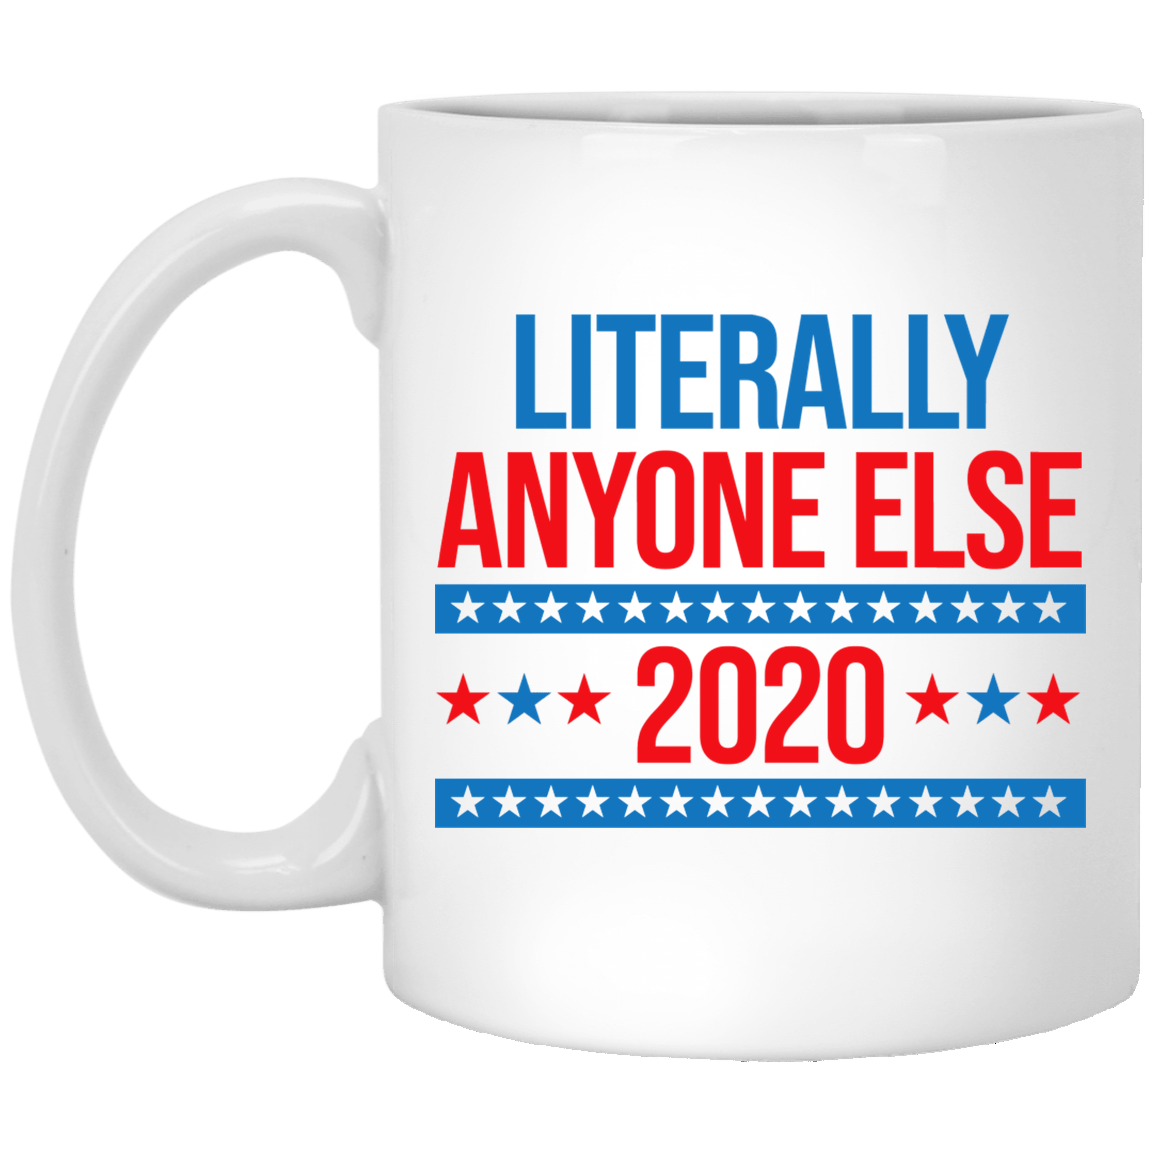 Literally Anyone Else 2020 Presidential Election Joke Mug 1005-9786-88282895-47417 - Tee Ript